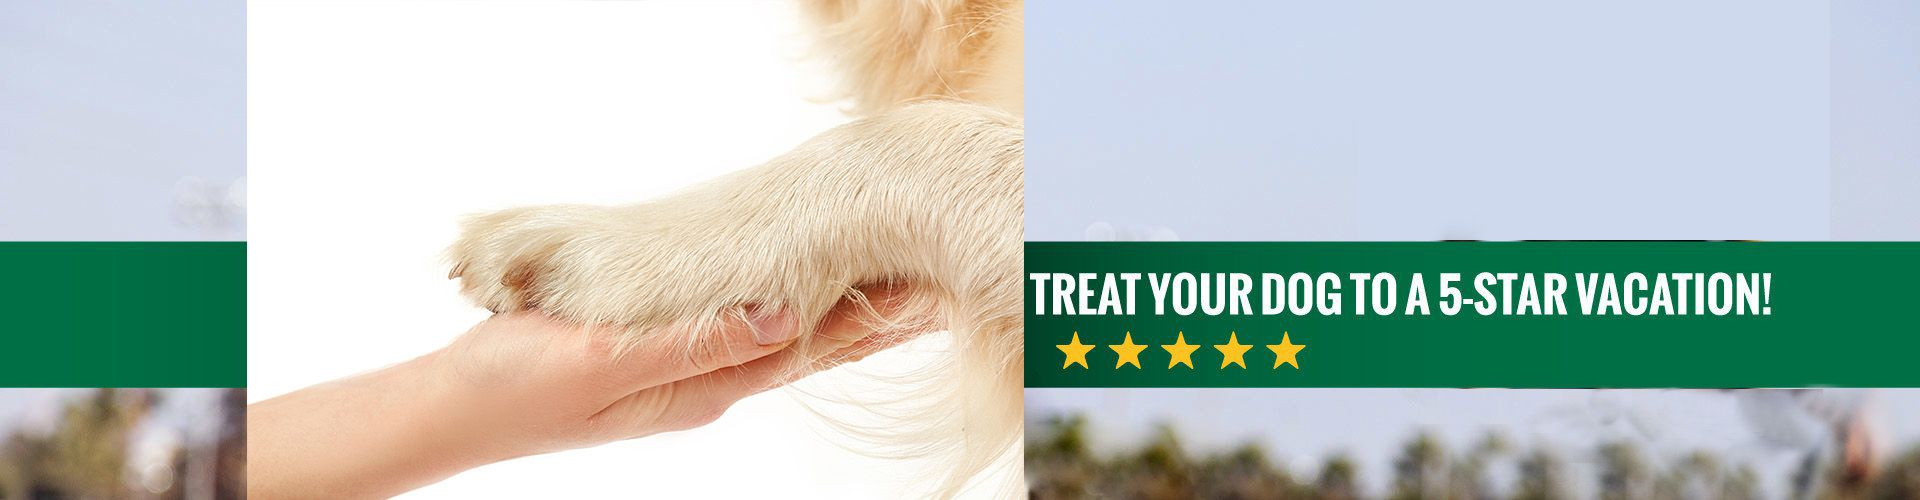 Treat your dog to a 5 star vacation